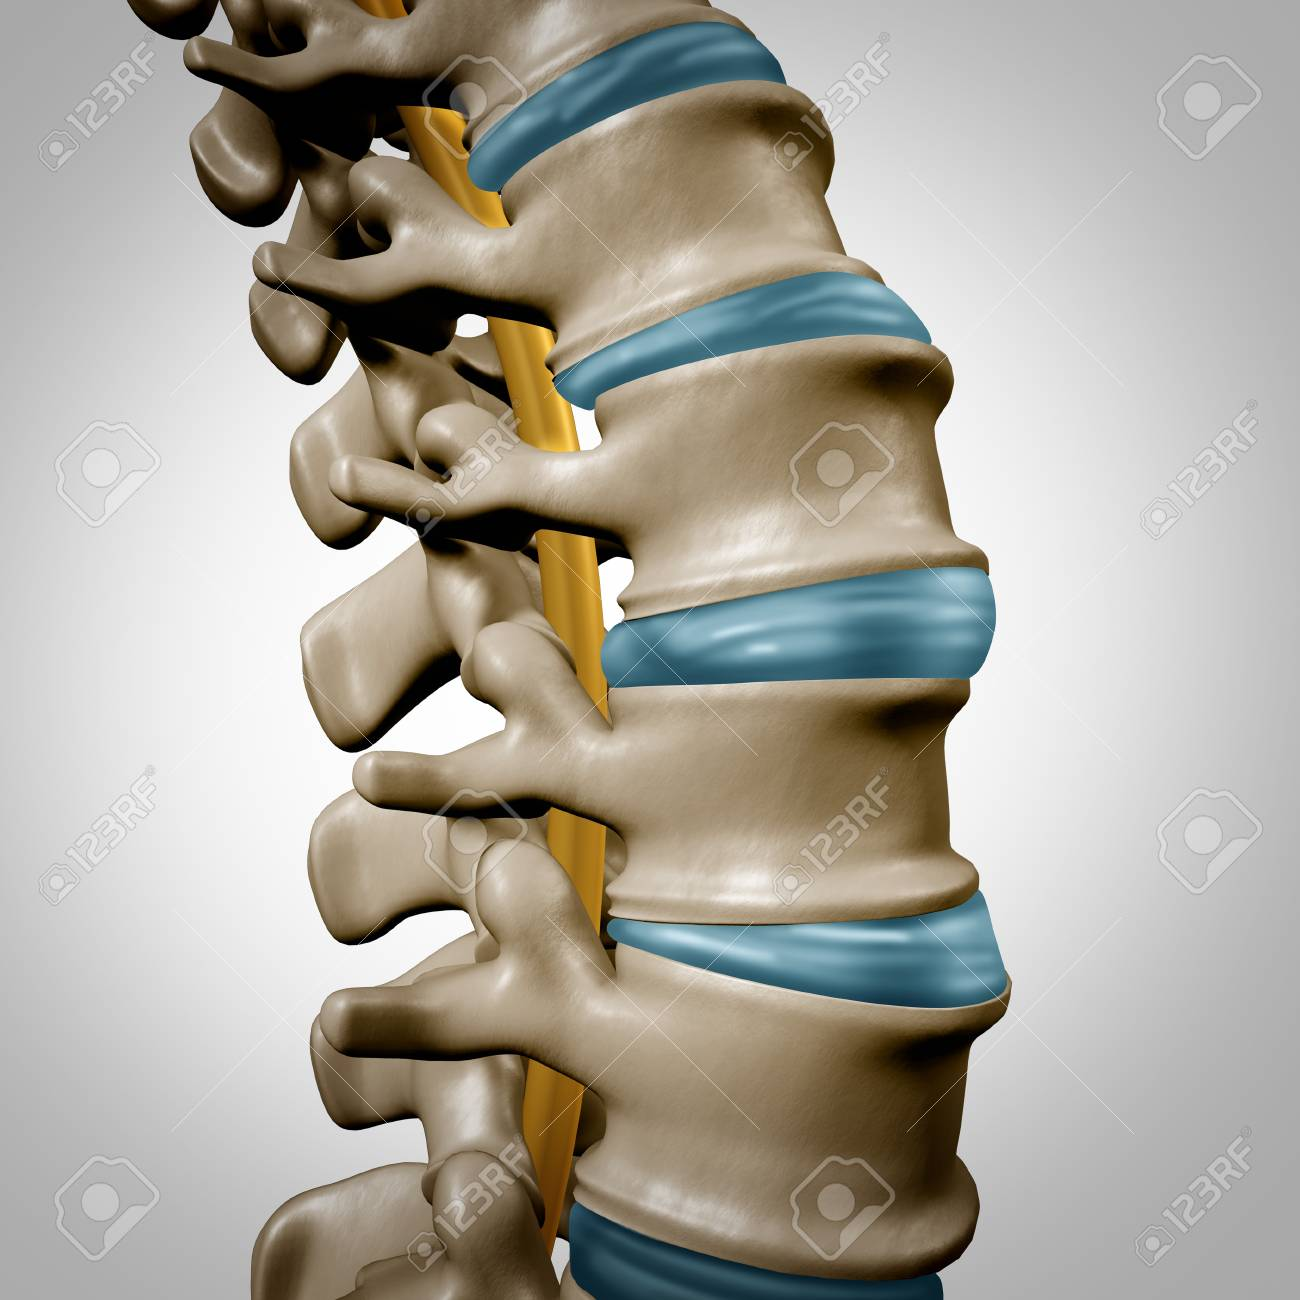 Human spine anatomy section and spinal concept as medical health care body symbol with the skeletal bone structure and intervertebral discs closeup as a 3D illustration. - 93012300